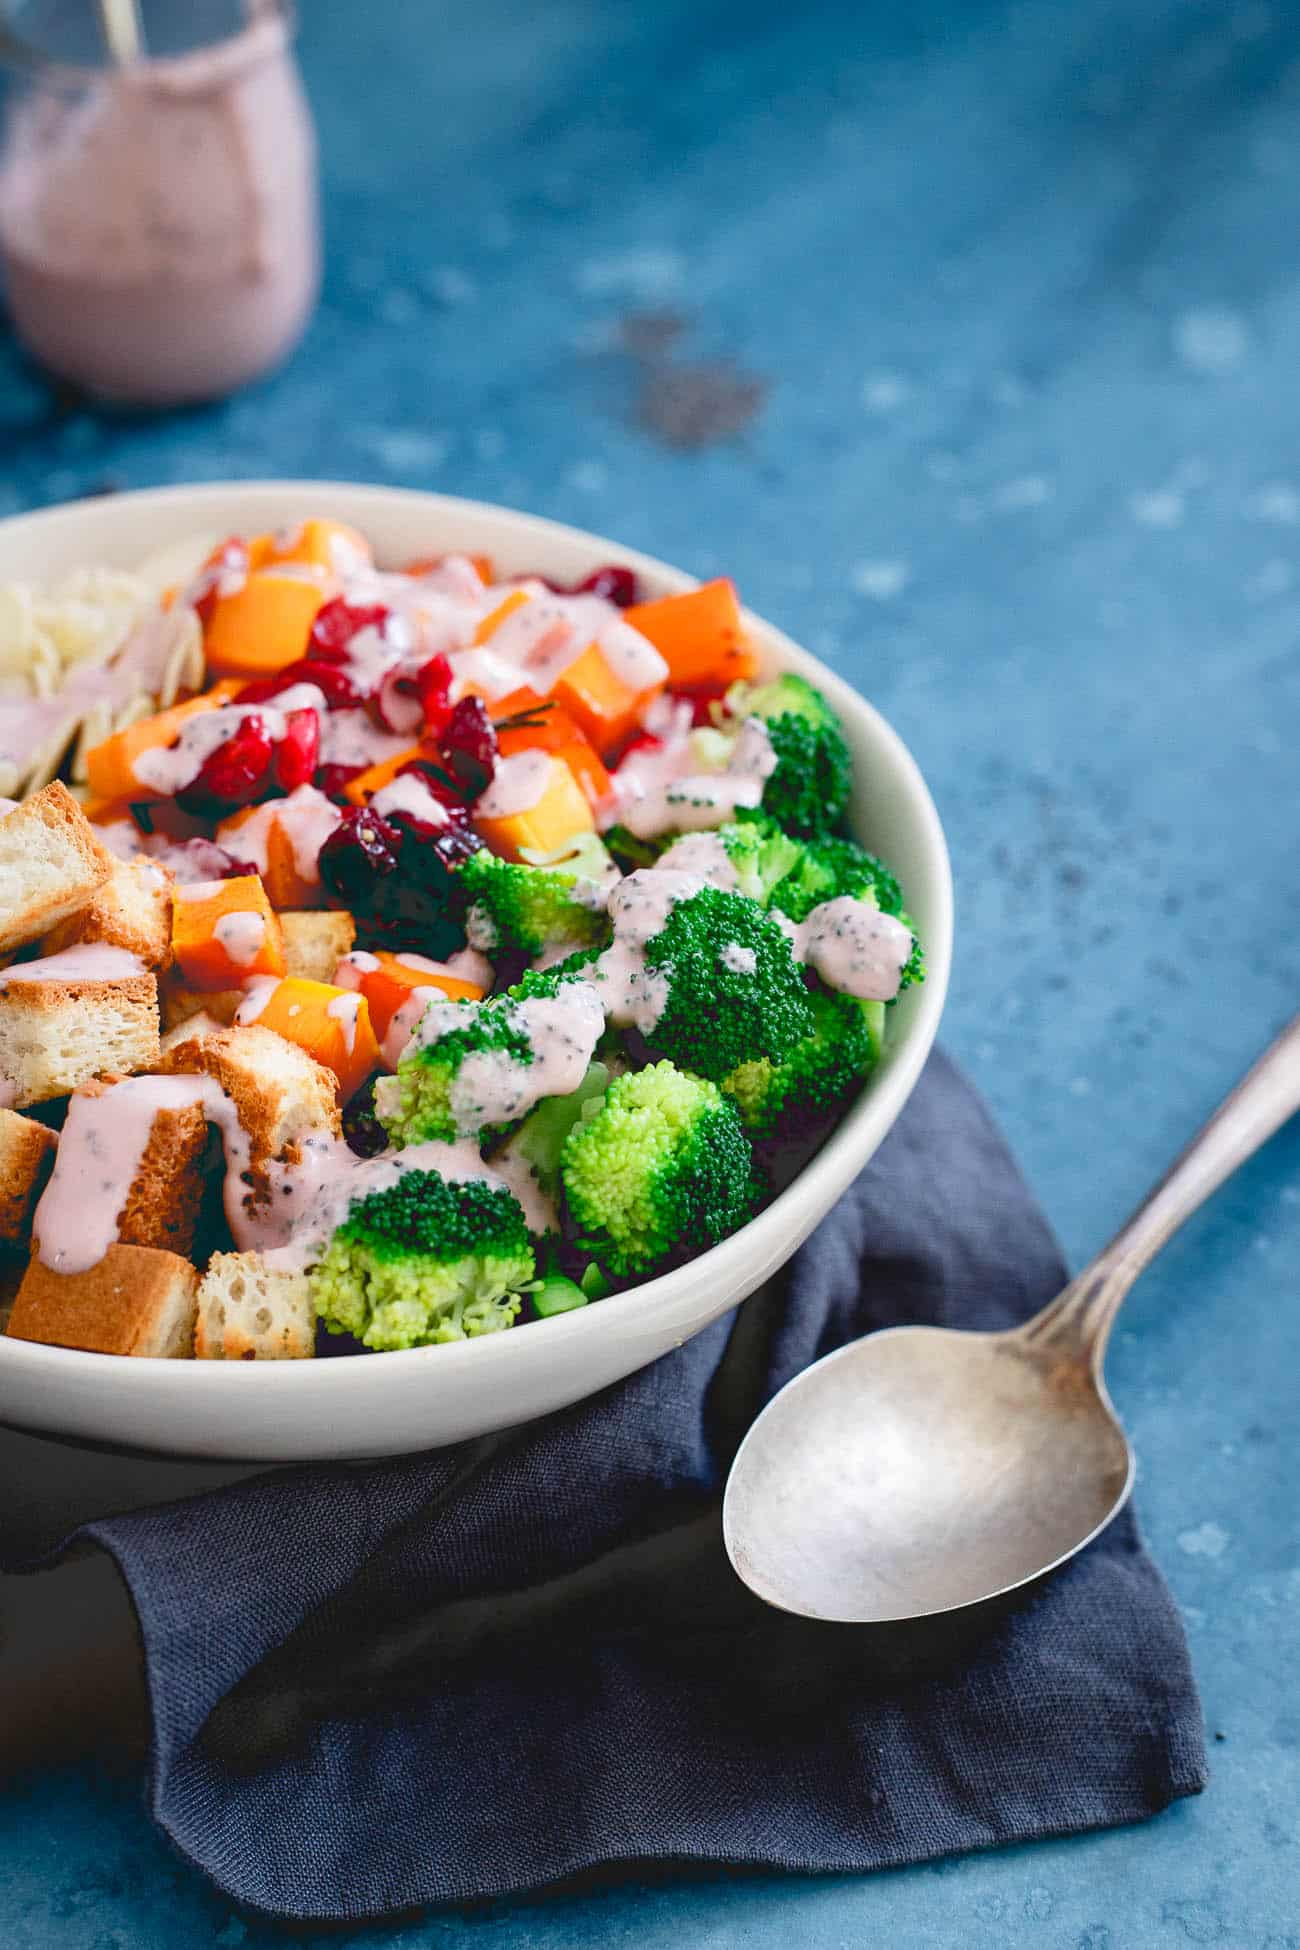 This fall panzanella cranberry broccoli salad is a healthy way to enjoy everything the season has to offer.